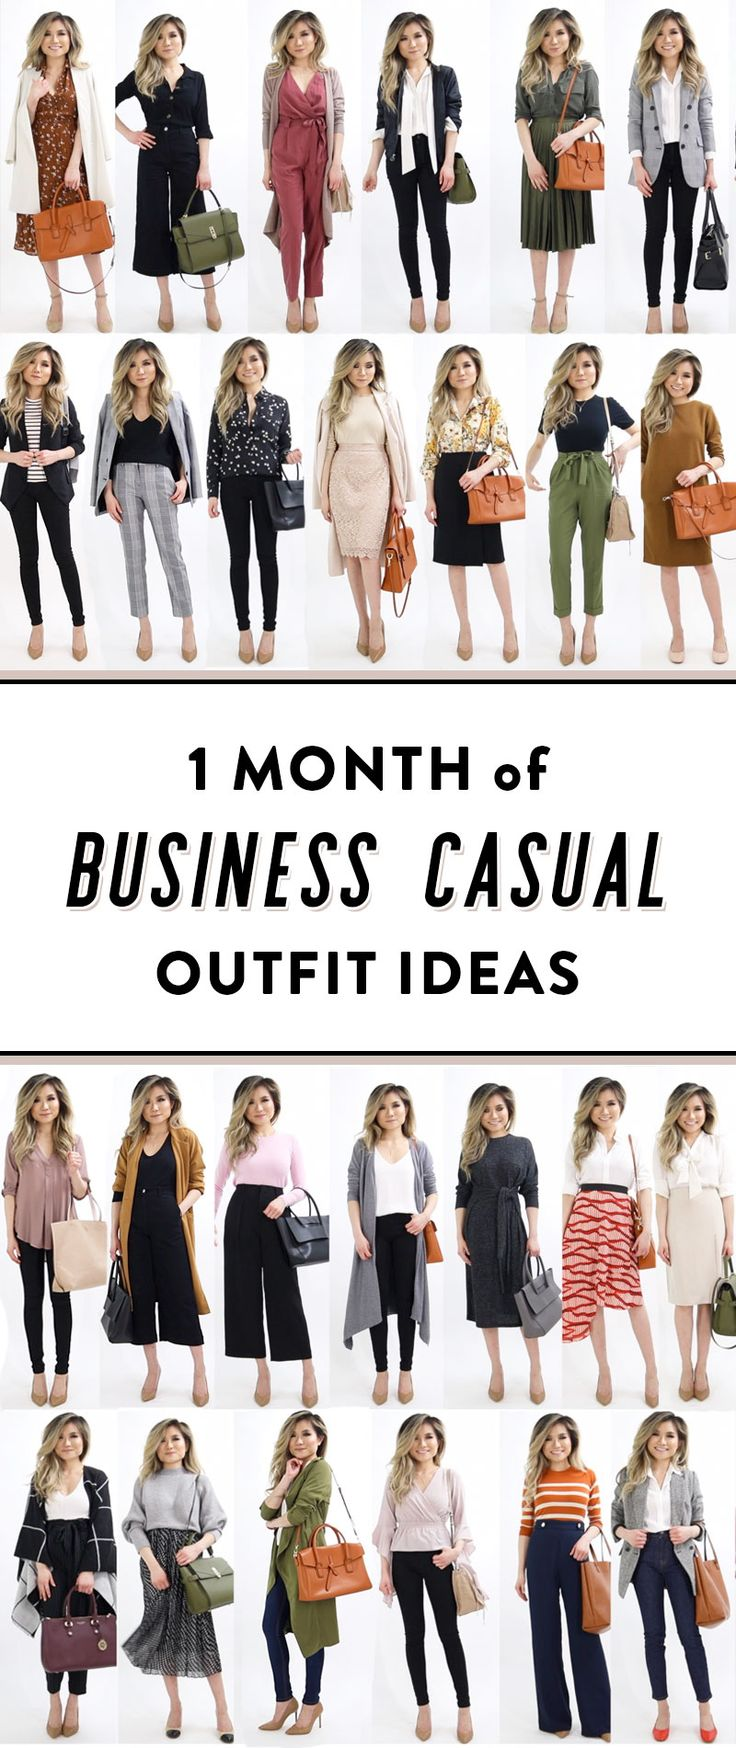 1 MONTH of Business Casual Work Outfit Ideas for Women